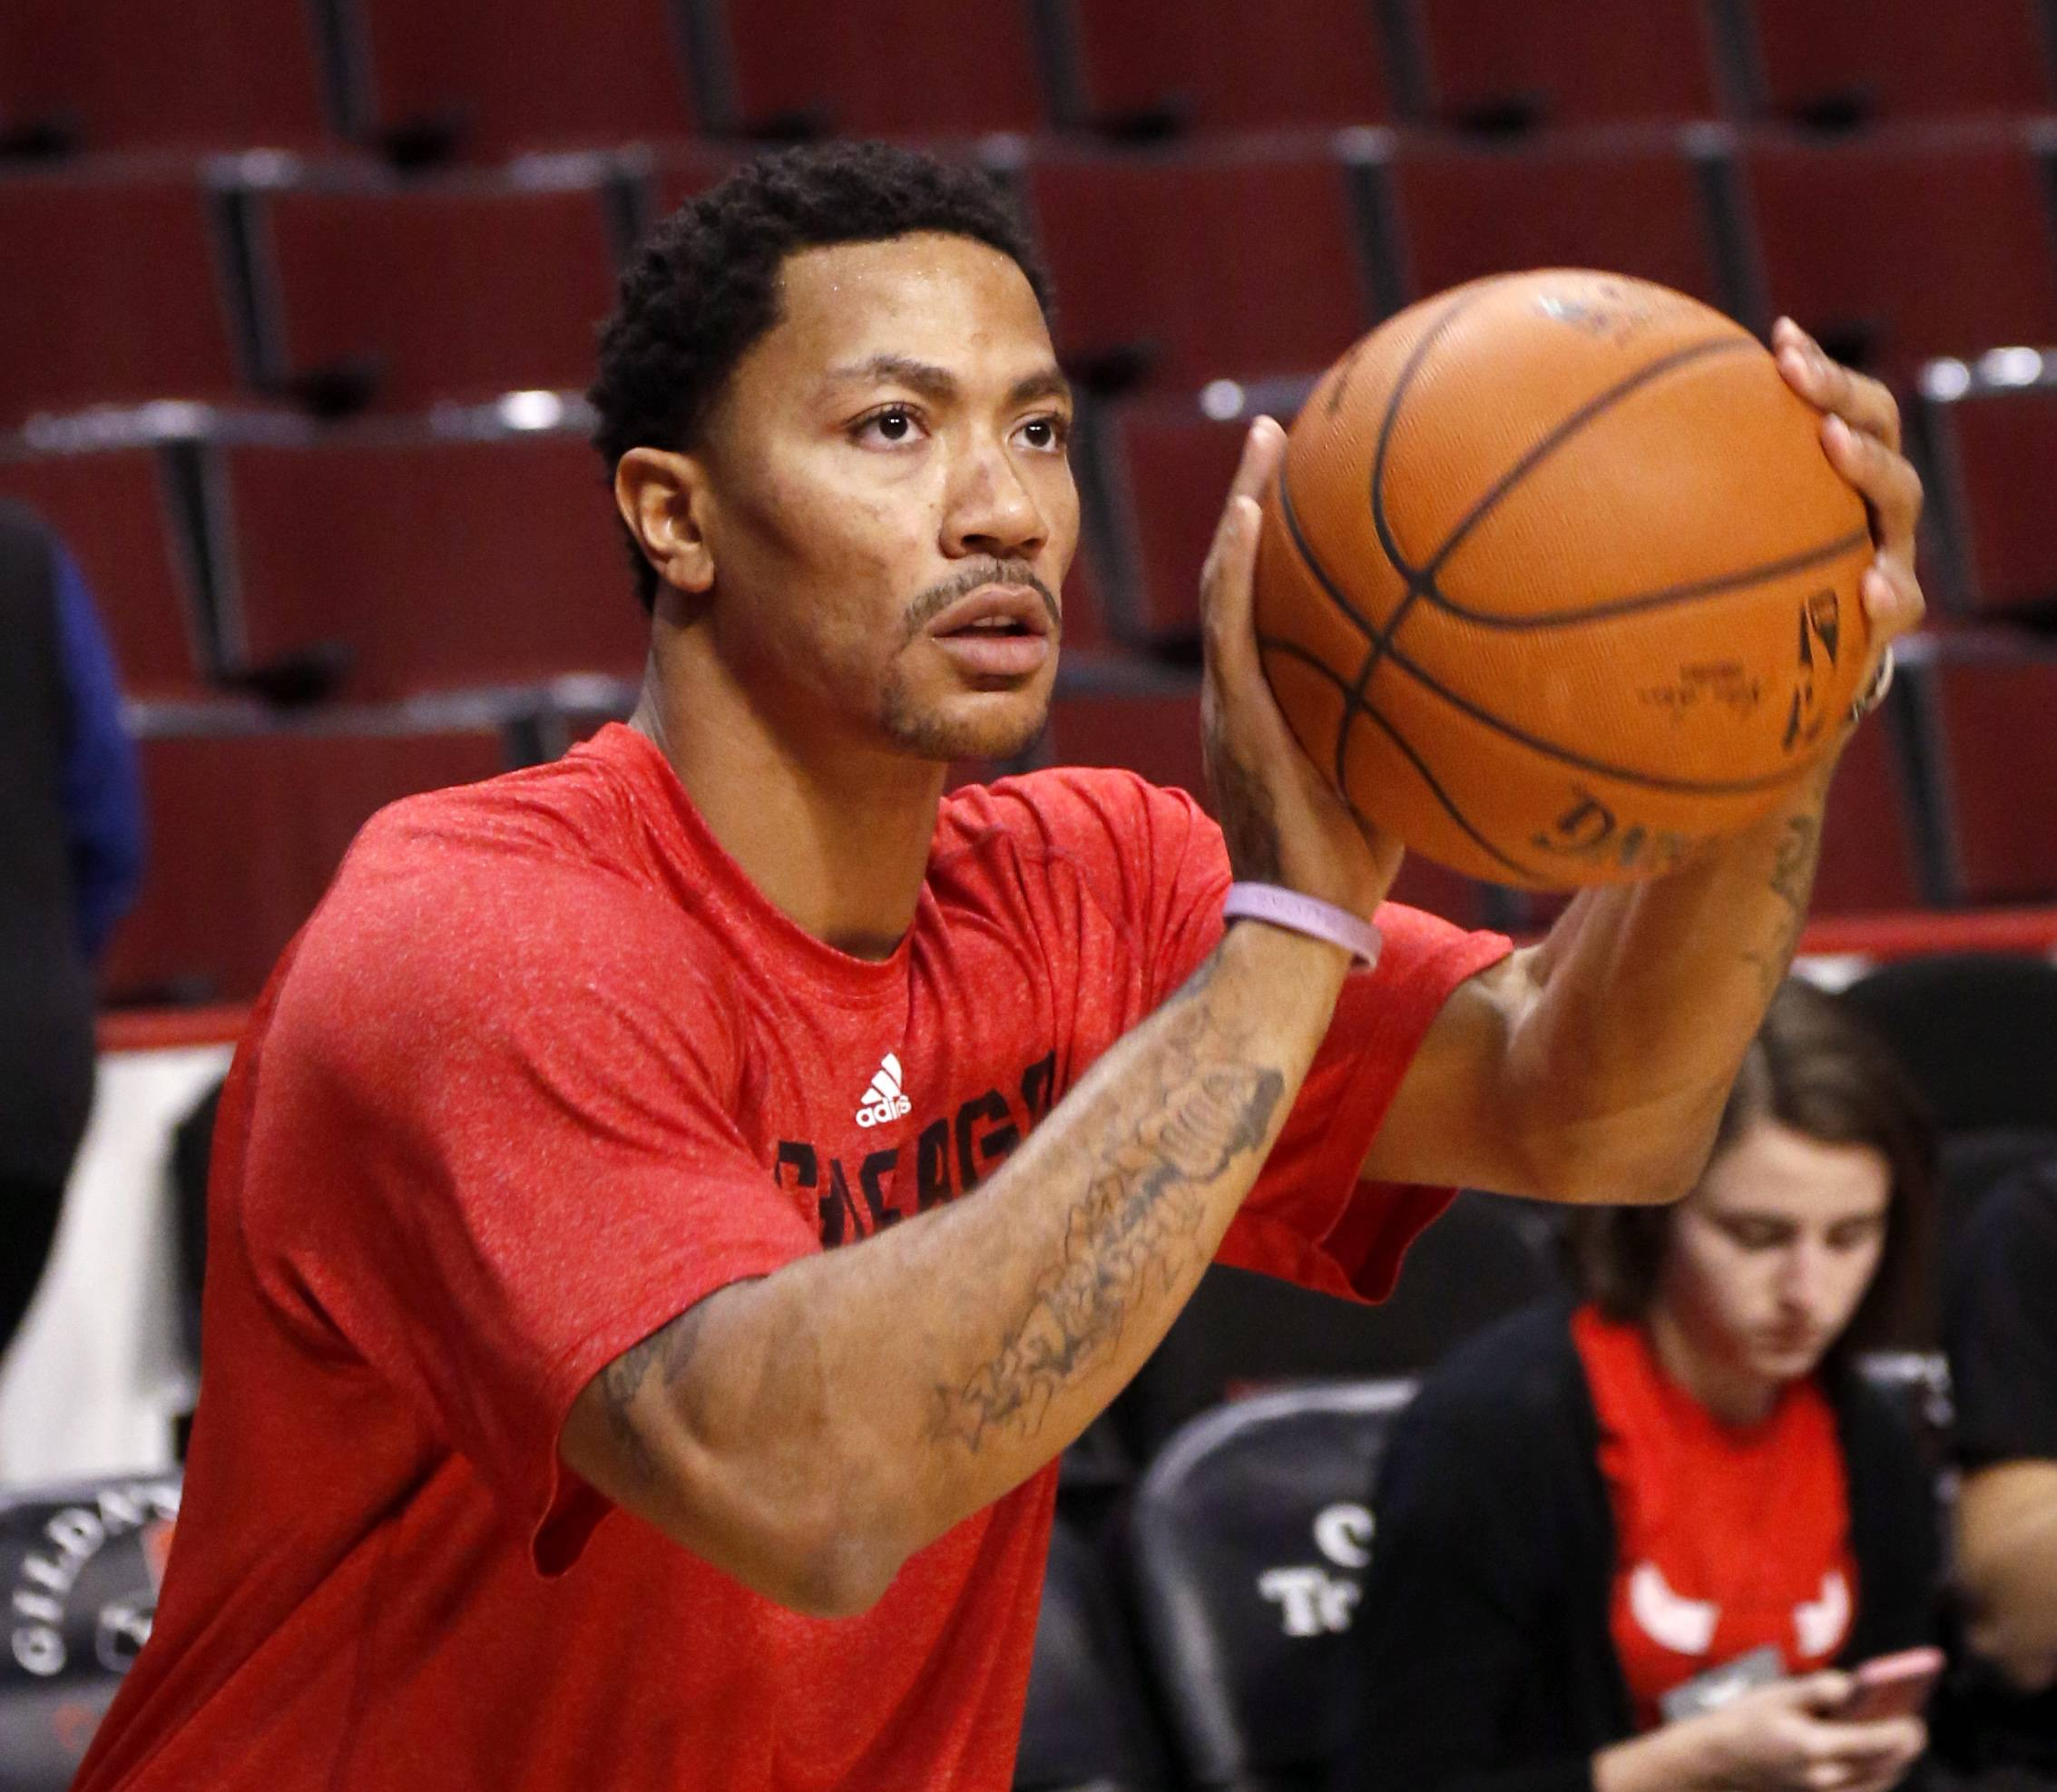 Bulls guard Derrick Rose, working out before Tuesday's game between the Bulls and the Atlanta Hawks, spoke publicly Wednesday night for the first time since early December.